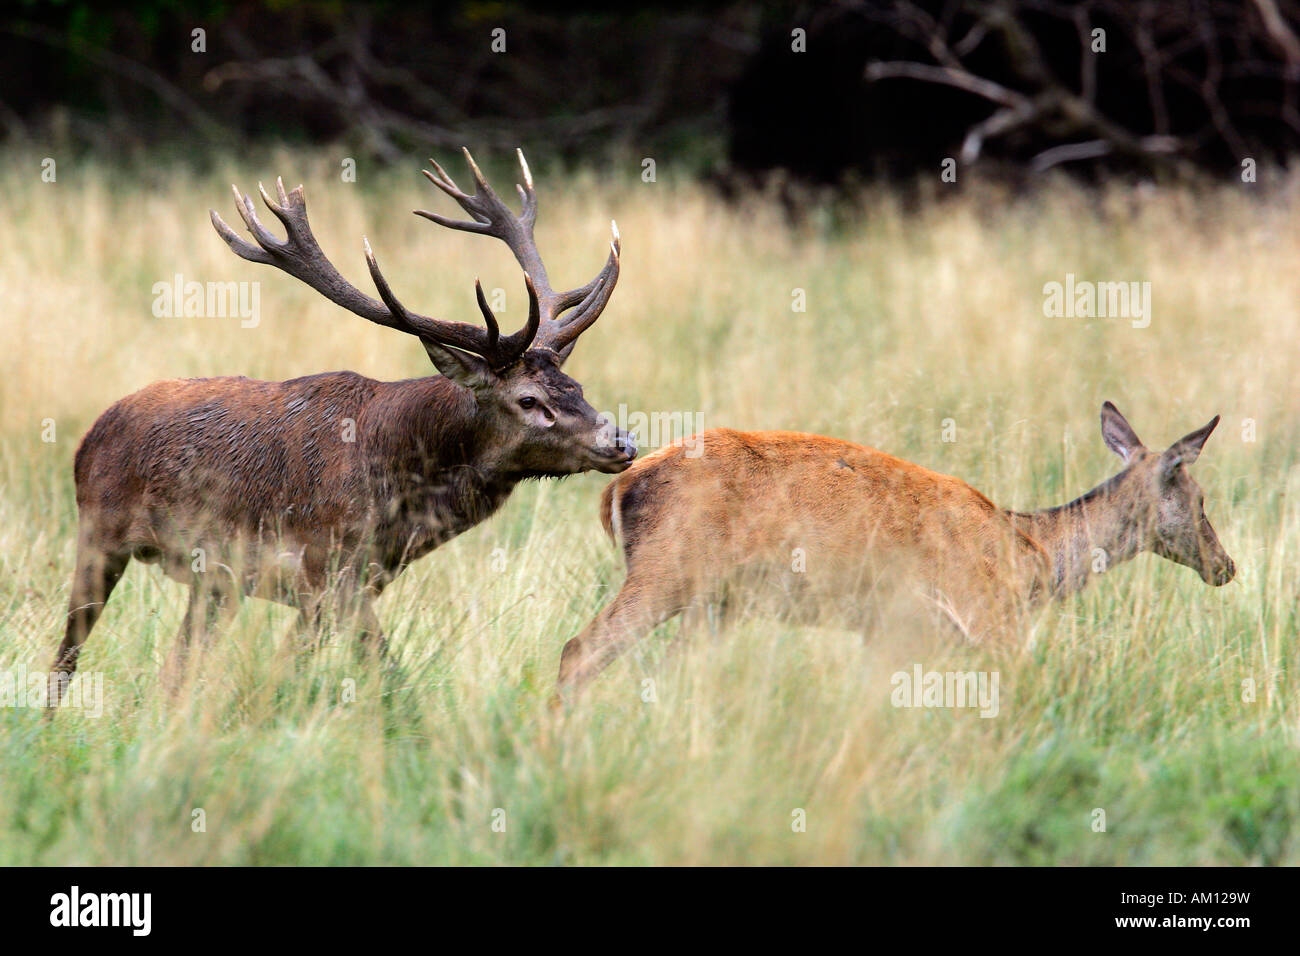 Red stag during the rut following a hind - red deer in heat - behaviour - male and female (Cervus elaphus) Stock Photo